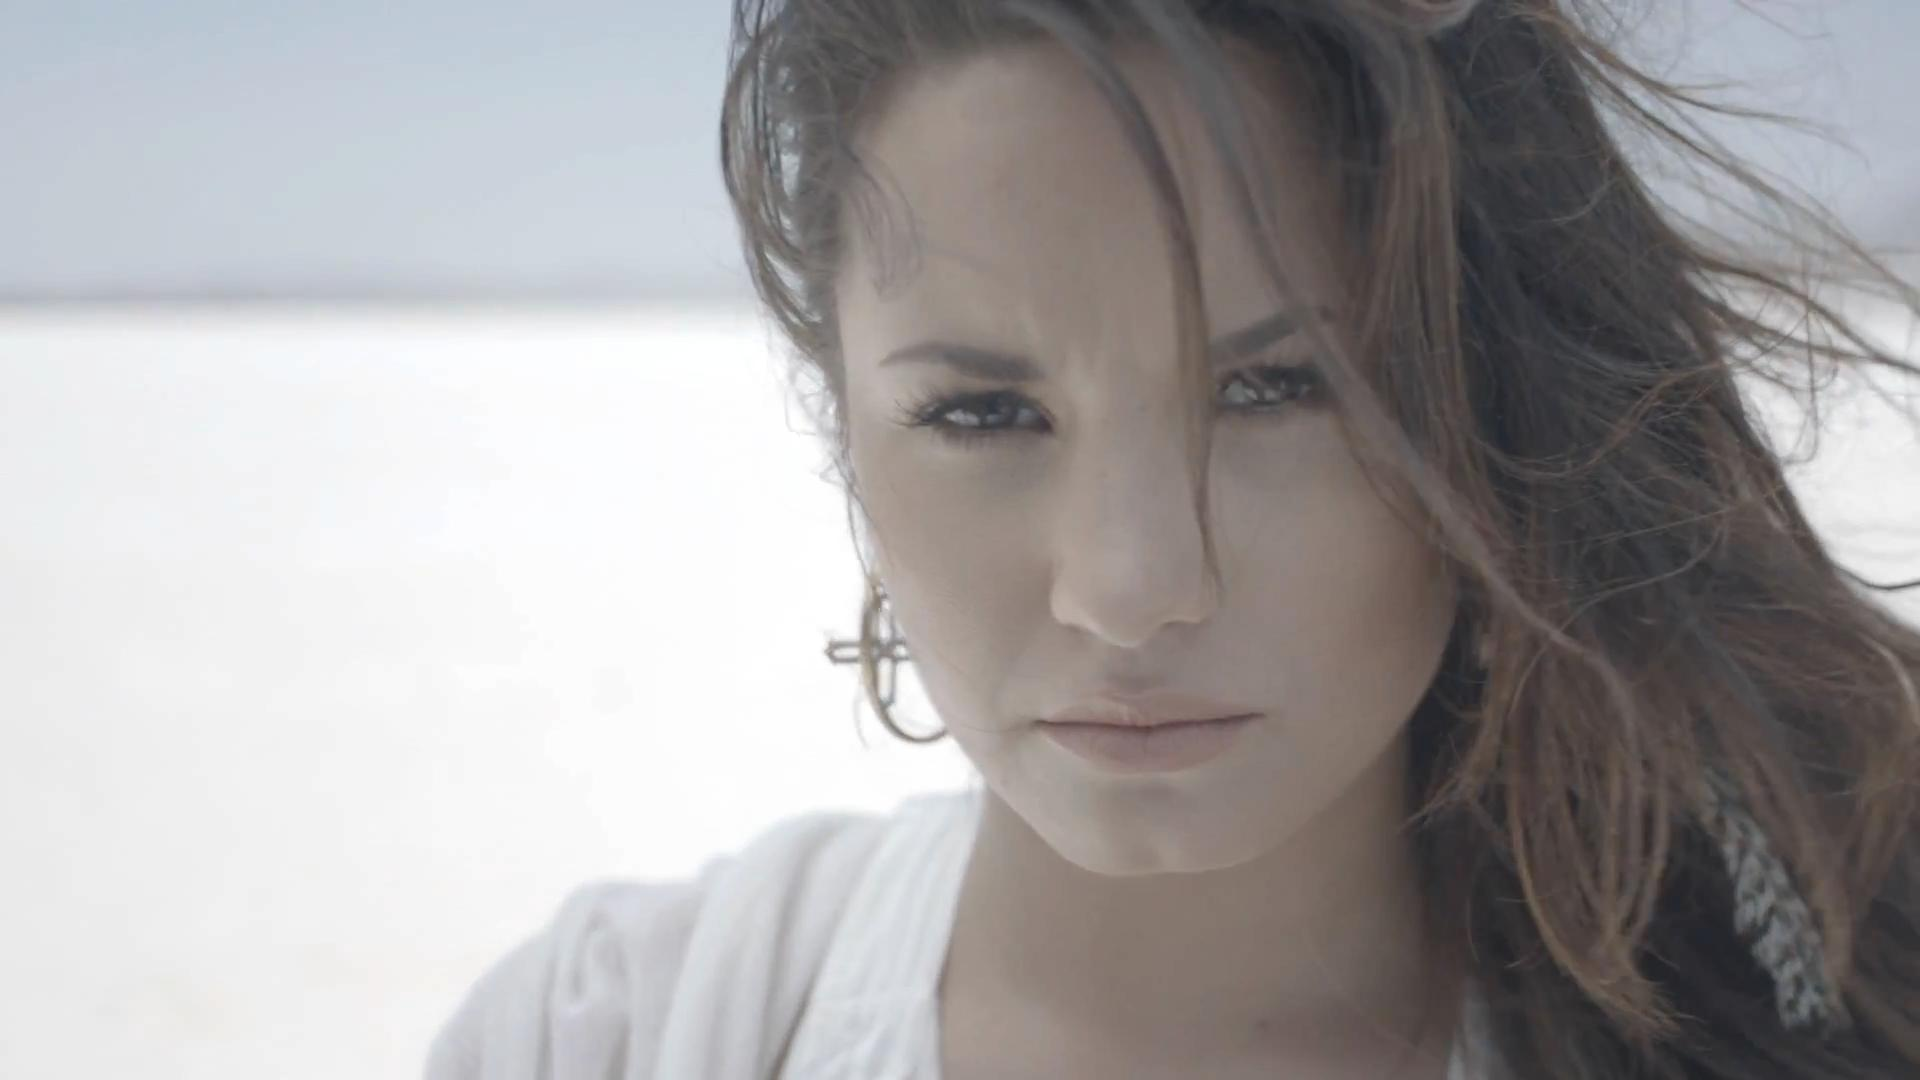 Demi Lovato Wallpapers HD 2015 1920x1080